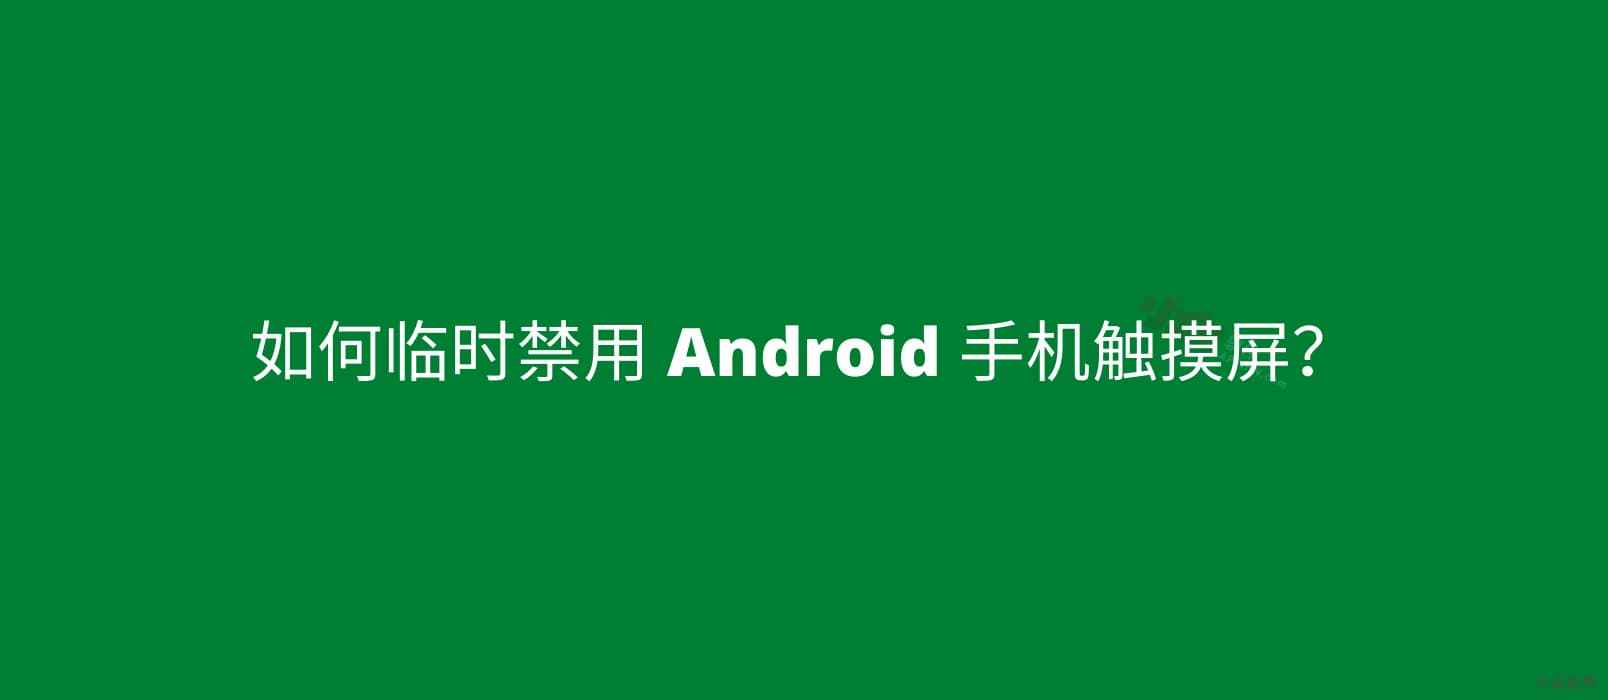 Touch Protector - 临时禁用 Android 手机触摸屏 1